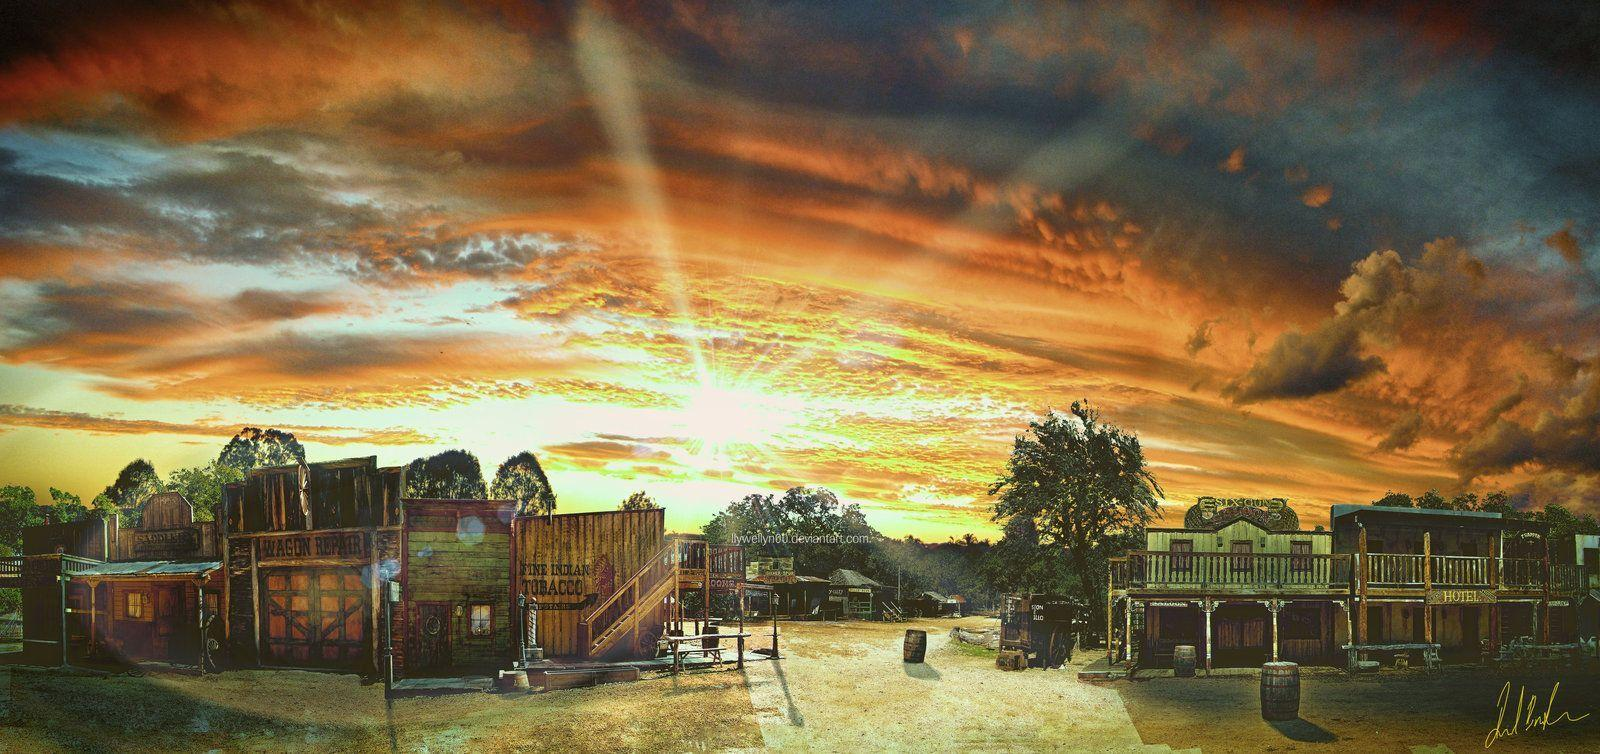 wild west background-#10